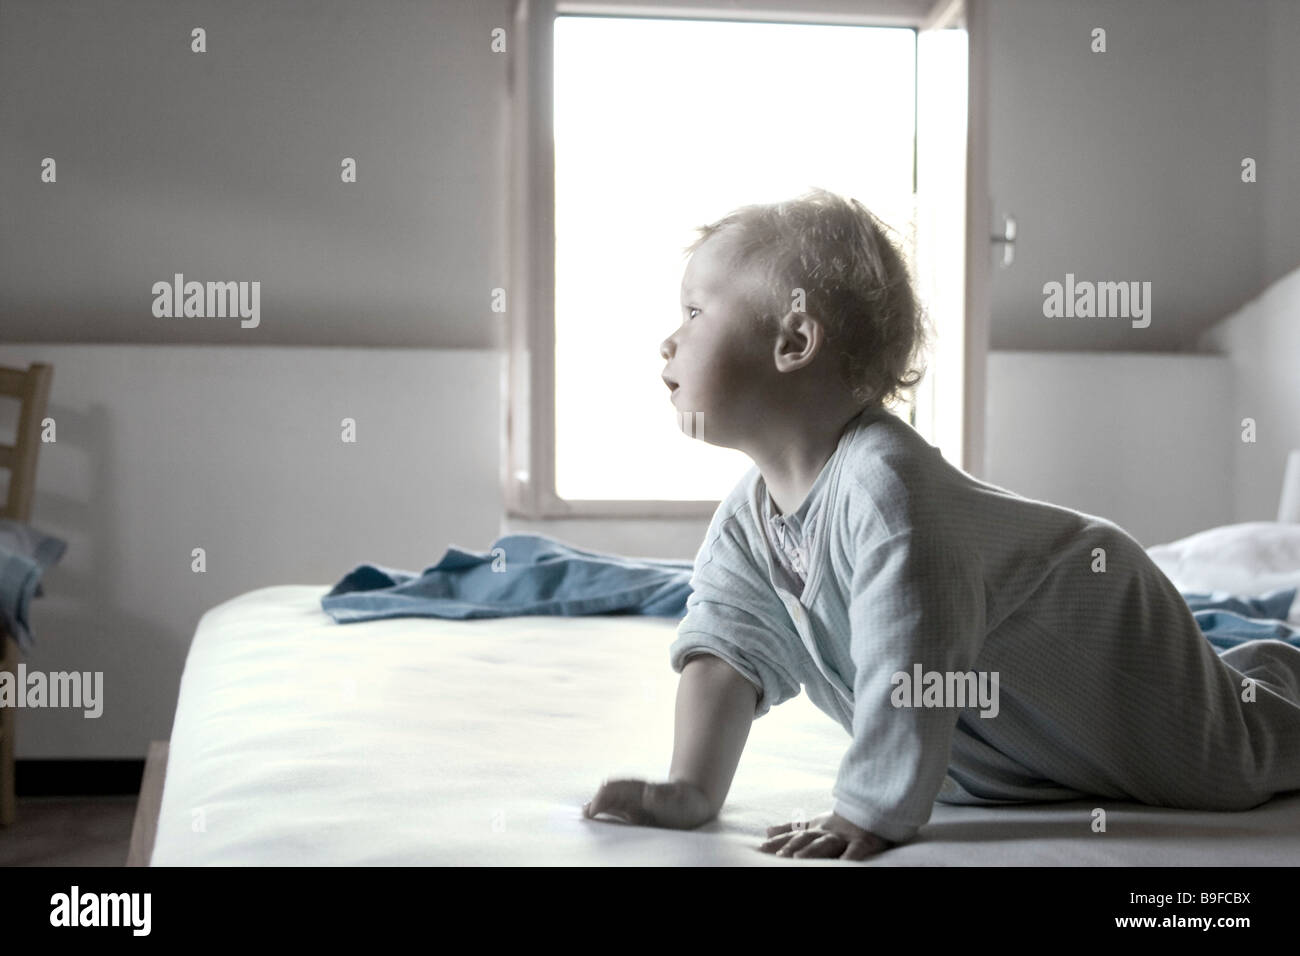 Baby toddling, low angle view - Stock Image